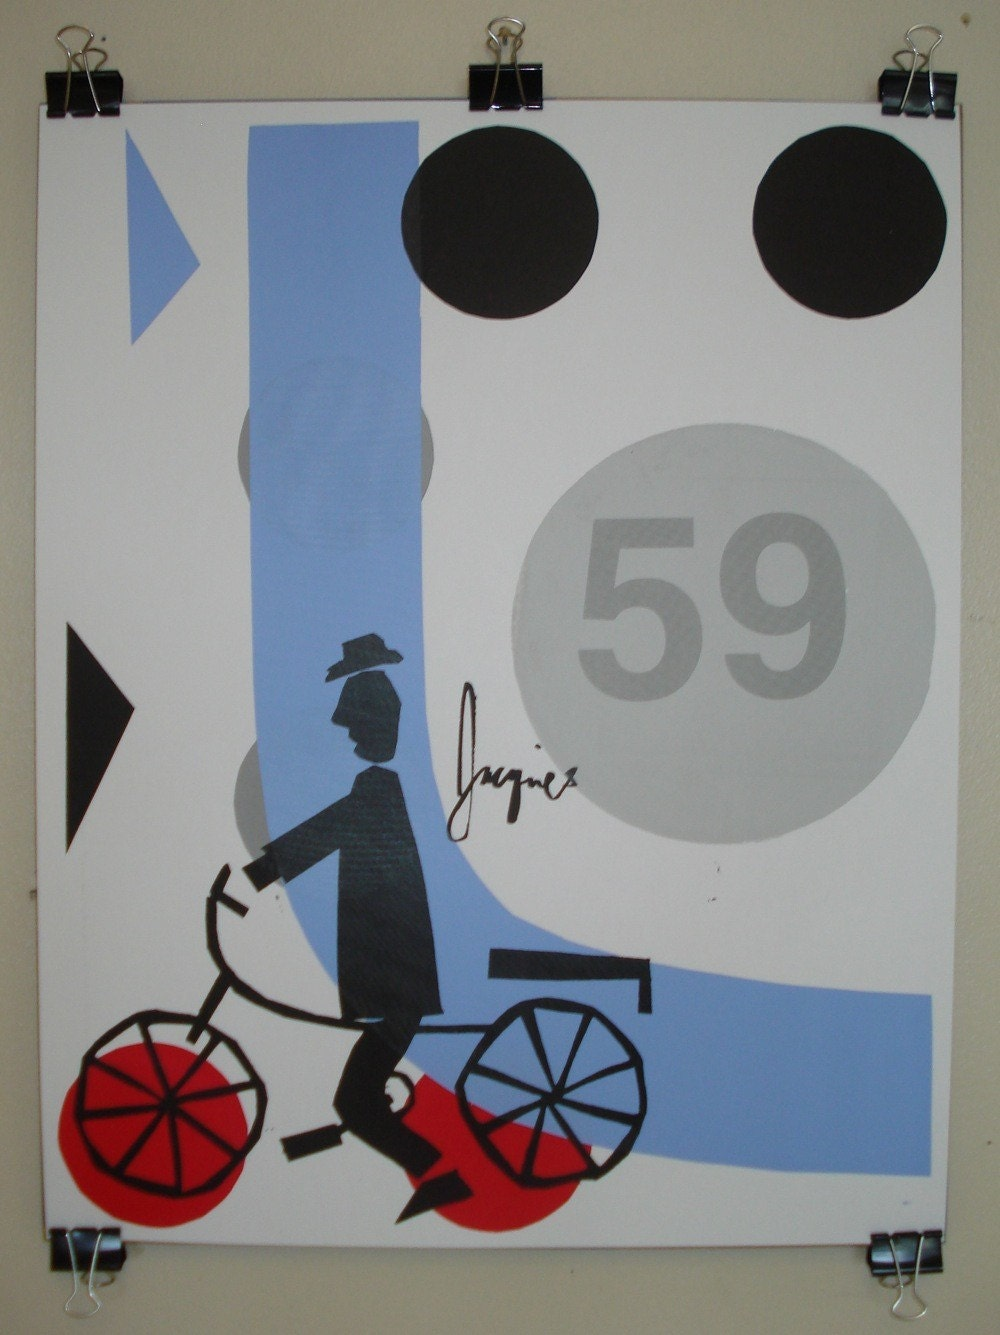 Jacques French Cyclist screen printed art Poster - 16 x 20 inches